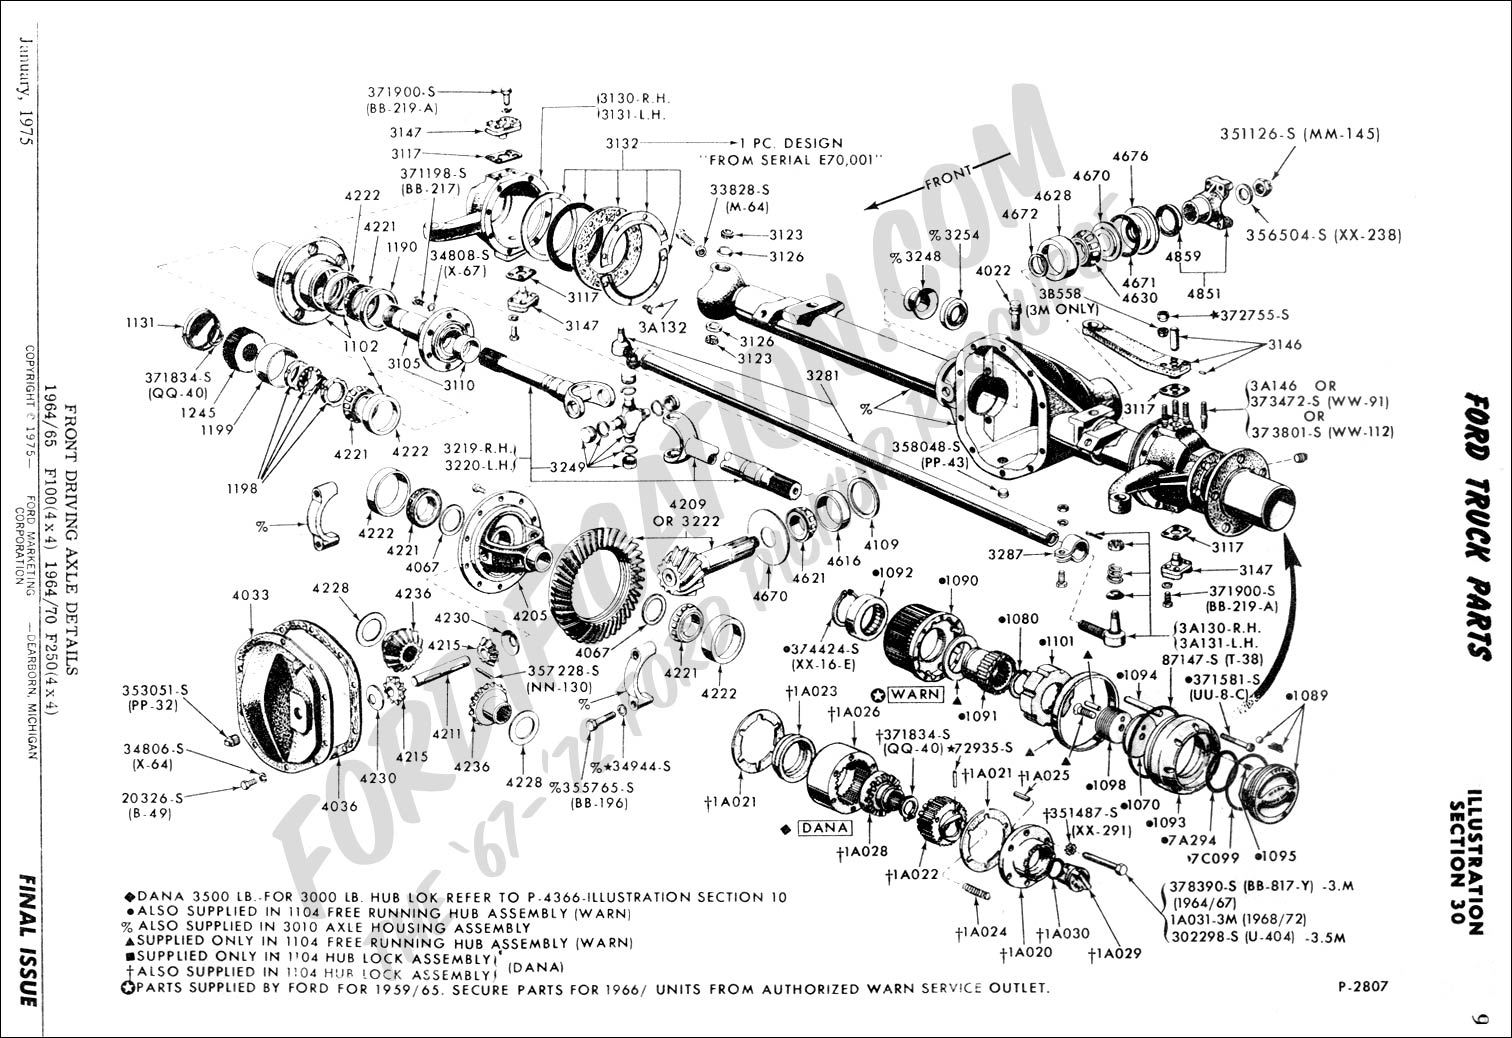 hight resolution of 2001 ford f250 parts diagram wiring schematic wiring diagram list 1995 ford f350 front end parts diagram 1995 ford f350 parts diagram